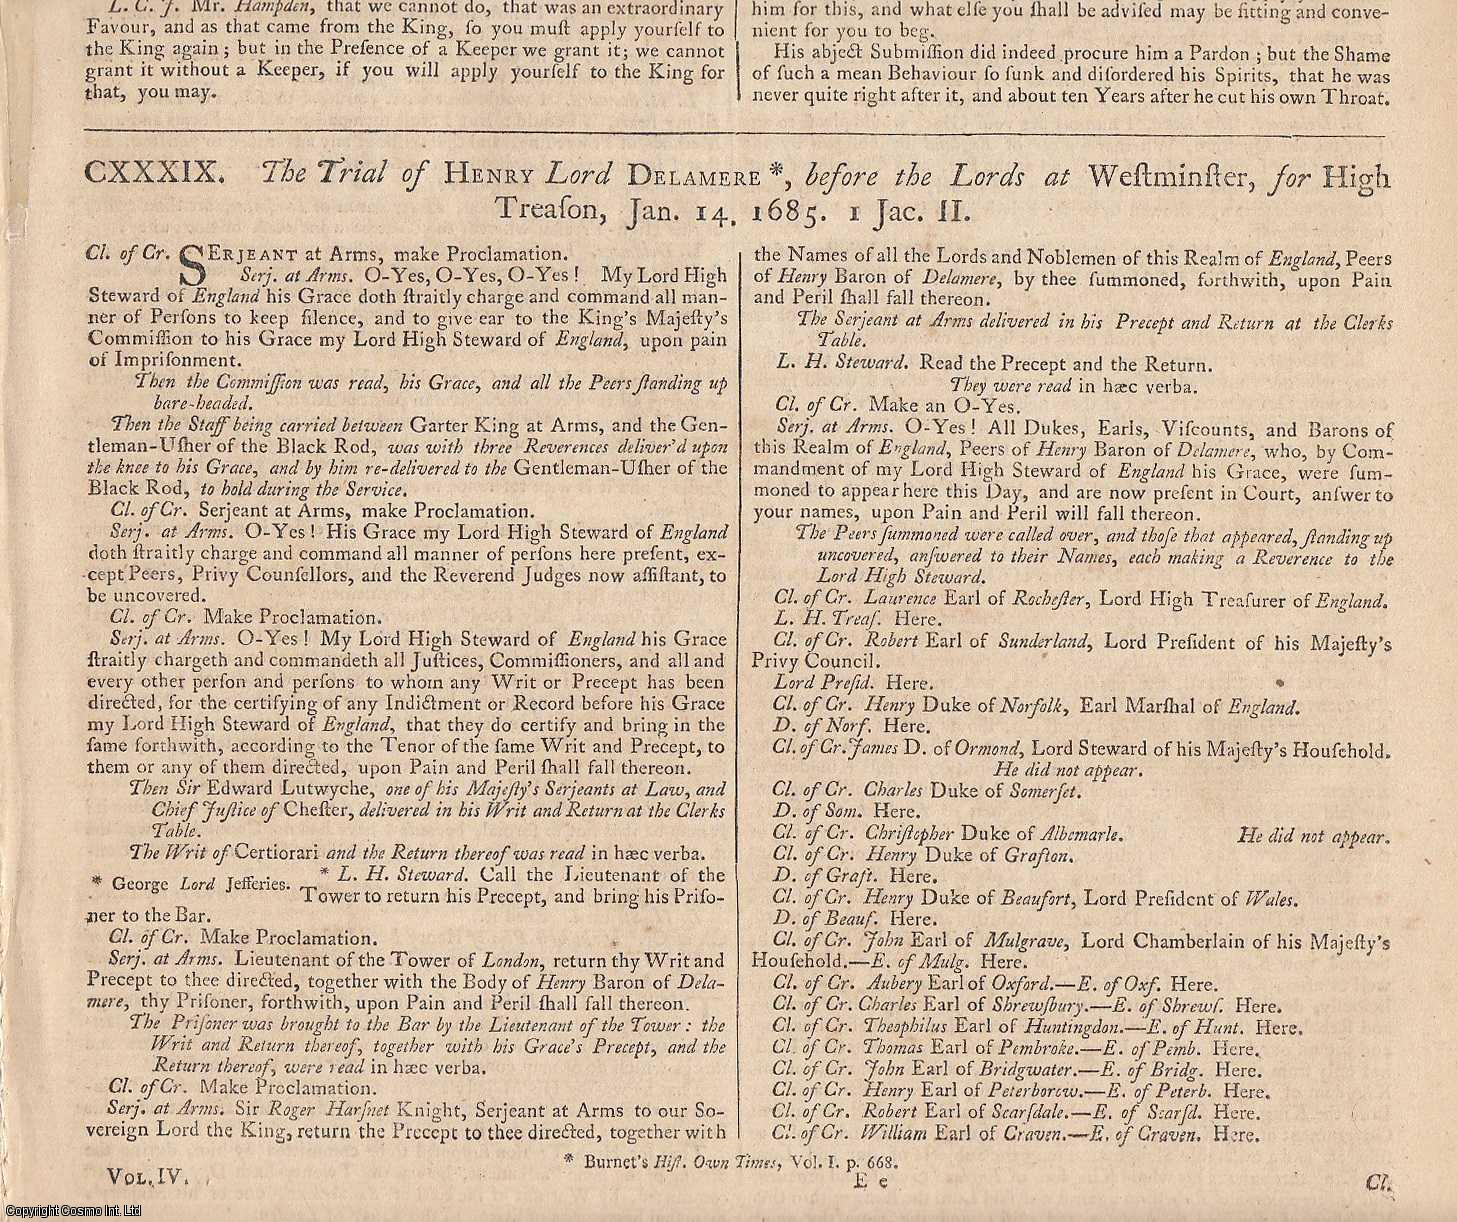 MONMOUTH REBELLION.  The Trial of Henry Lord Delamere, for High Treason, 1685., [Trial].